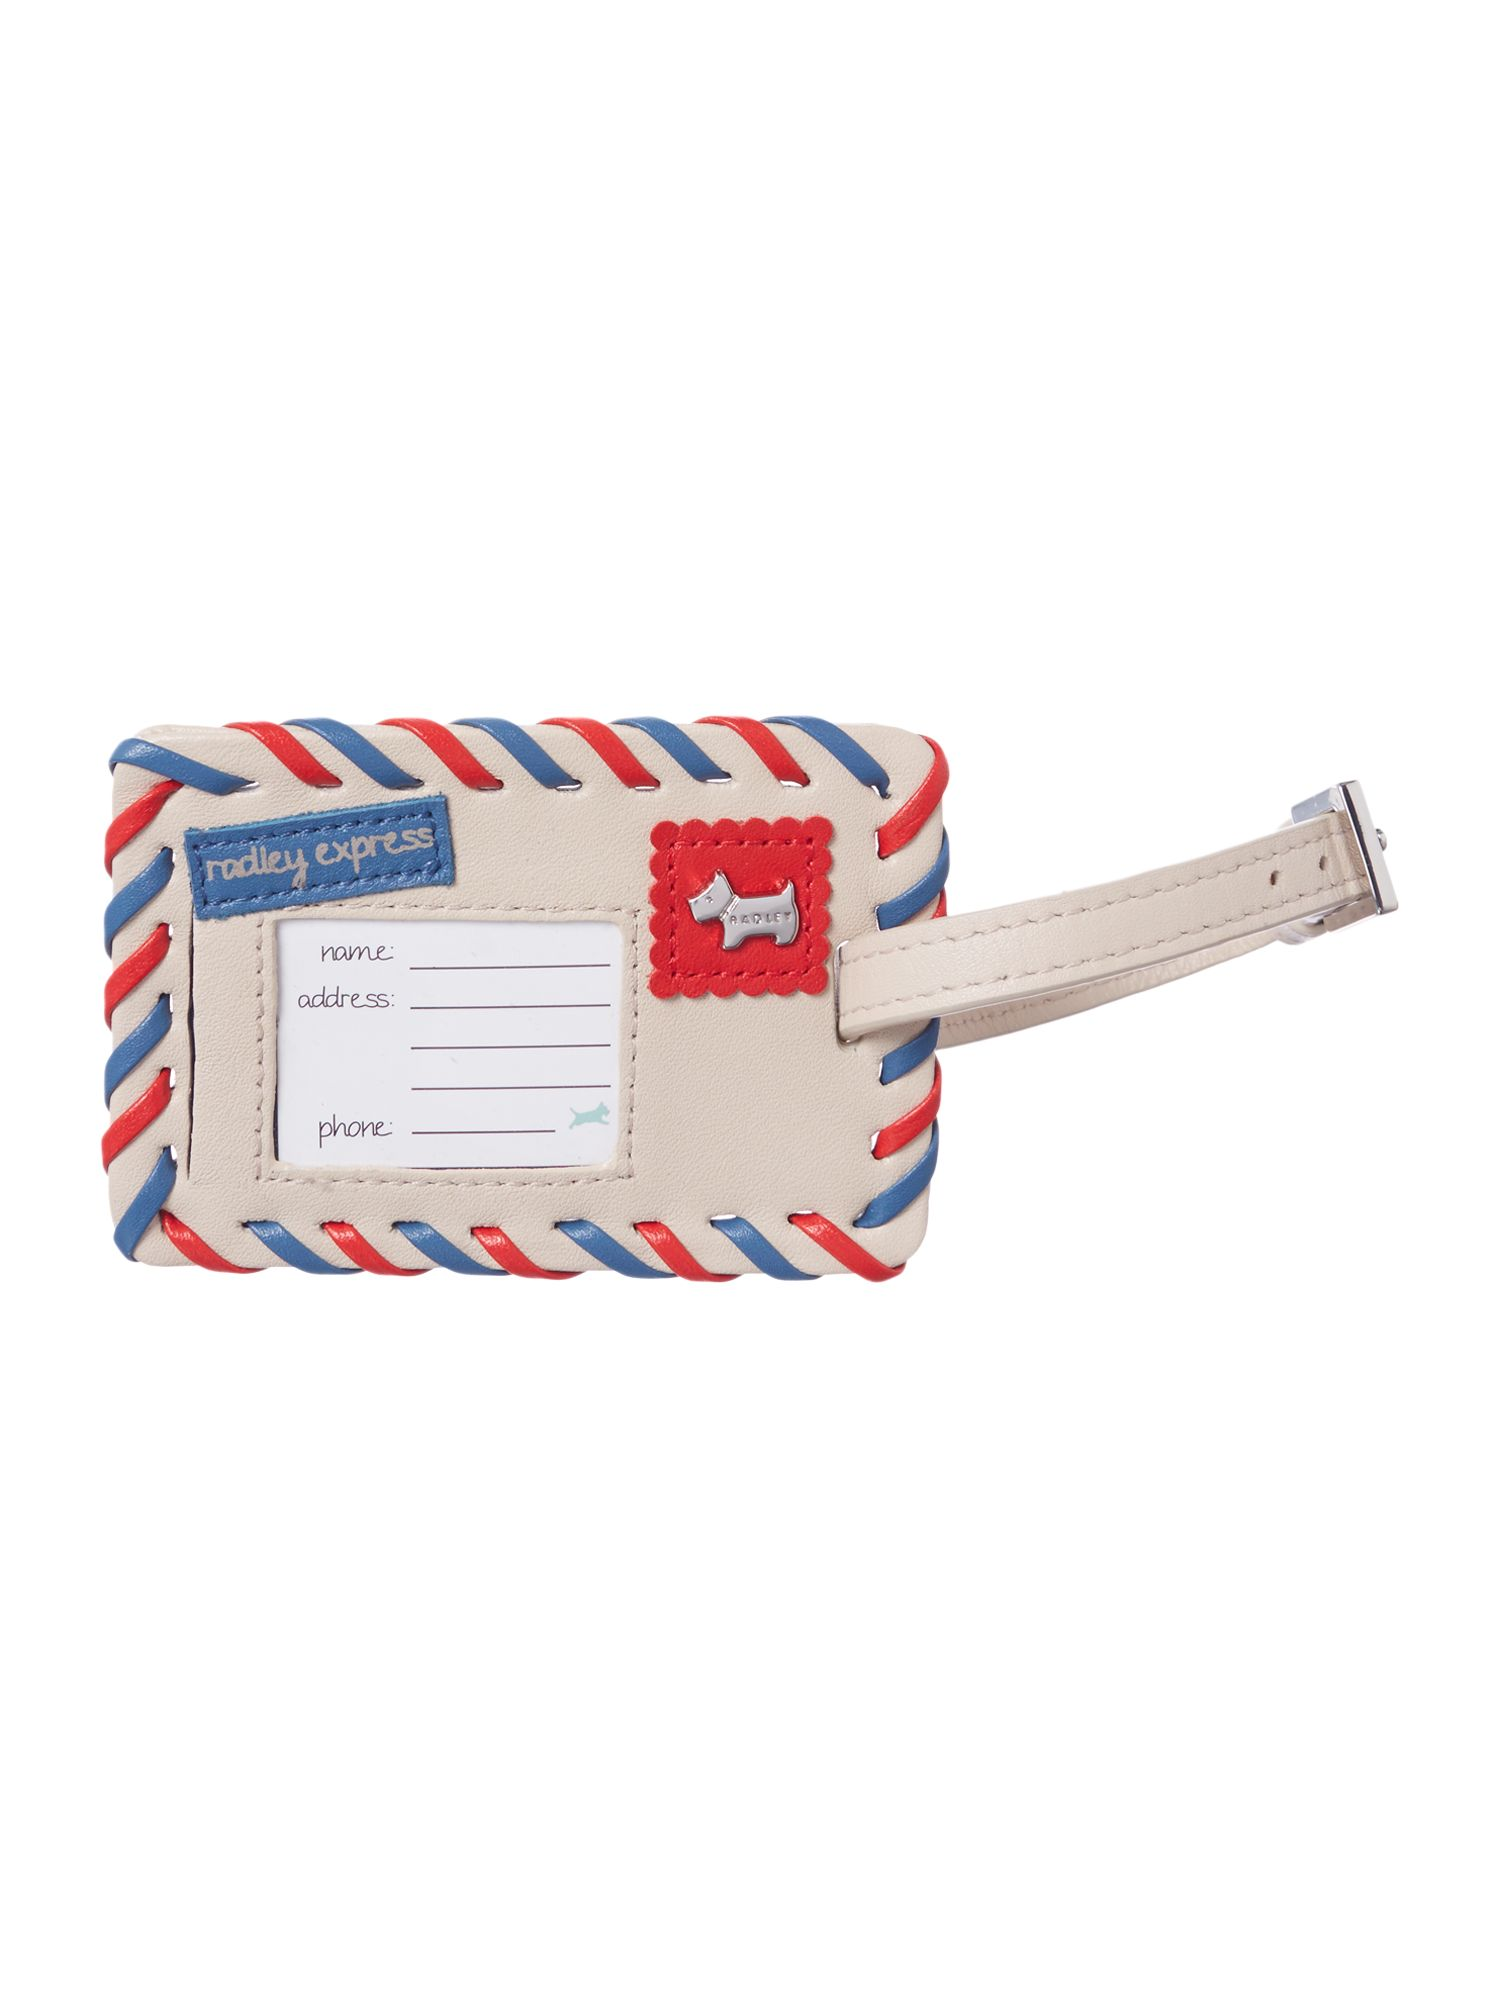 The travelling wanderer luggage tag